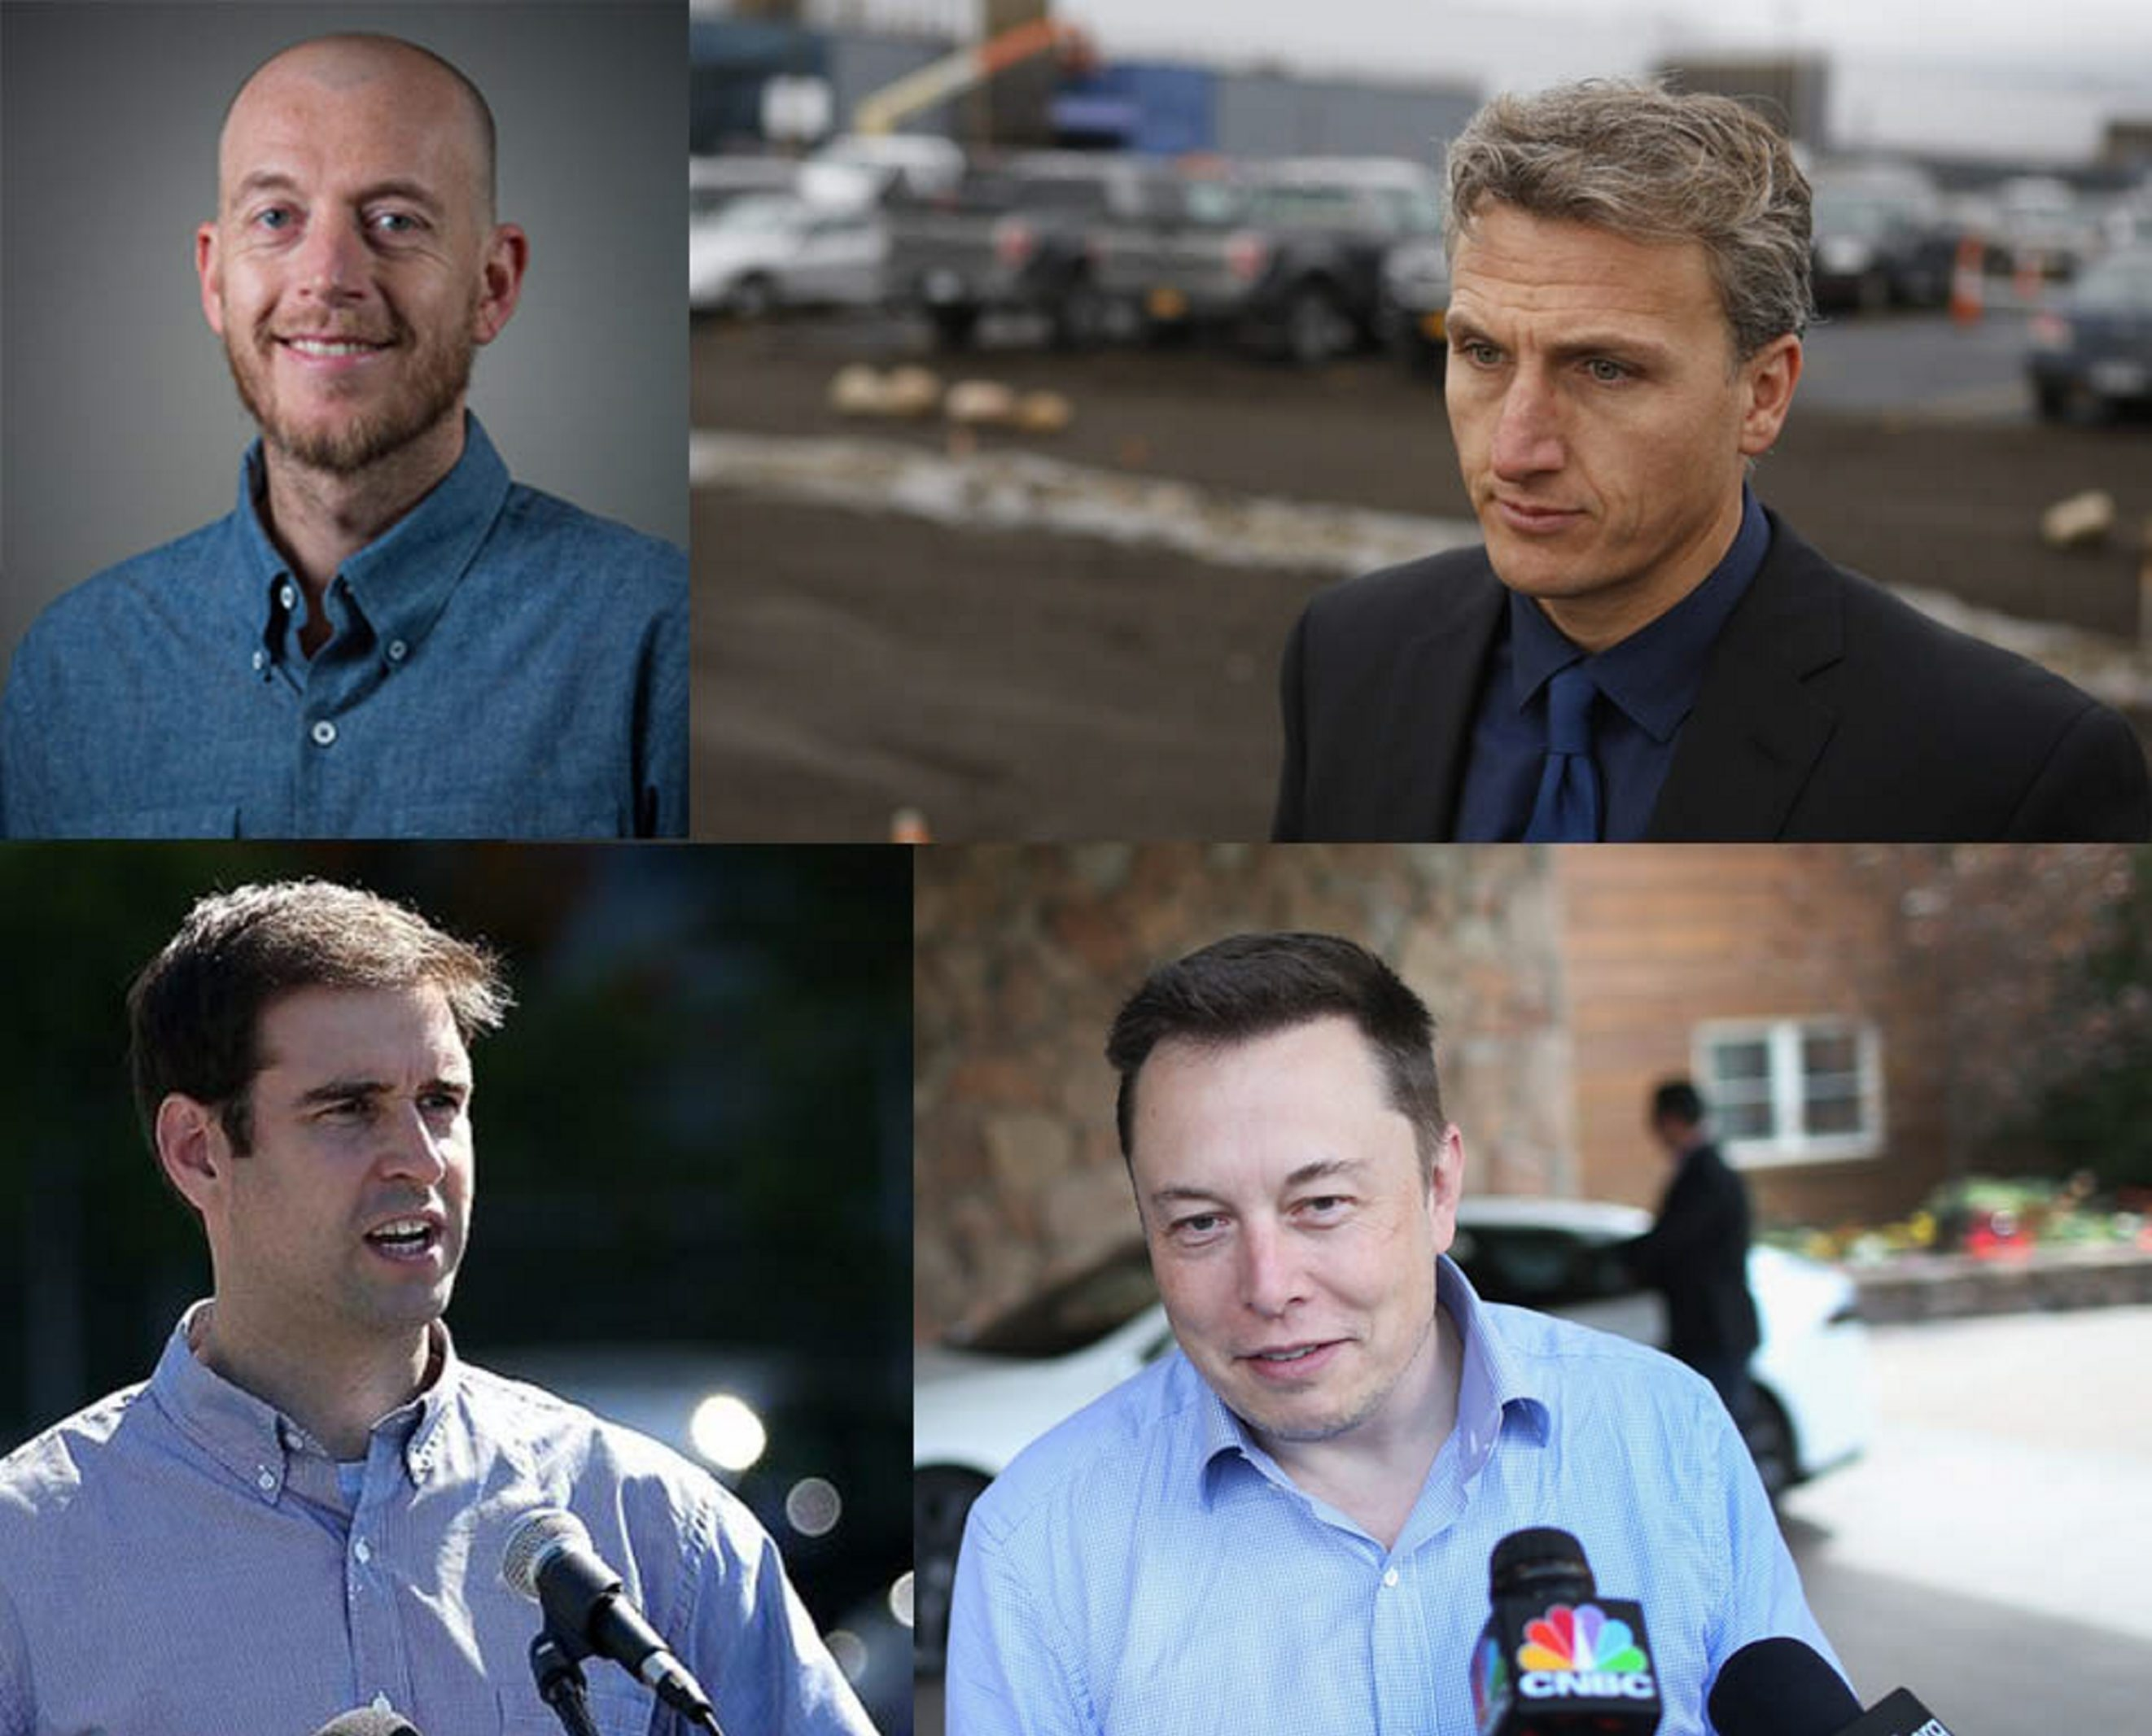 Clockwise, from top left: Peter Rive, chief technology officer for SolarCity; Lyndon Rive (Derek Gee/Buffalo News); Elon Musk, chairman of Tesla Motors (Getty Images); and JB Straubel, Tesla Motors chief technical officer (Getty Images).